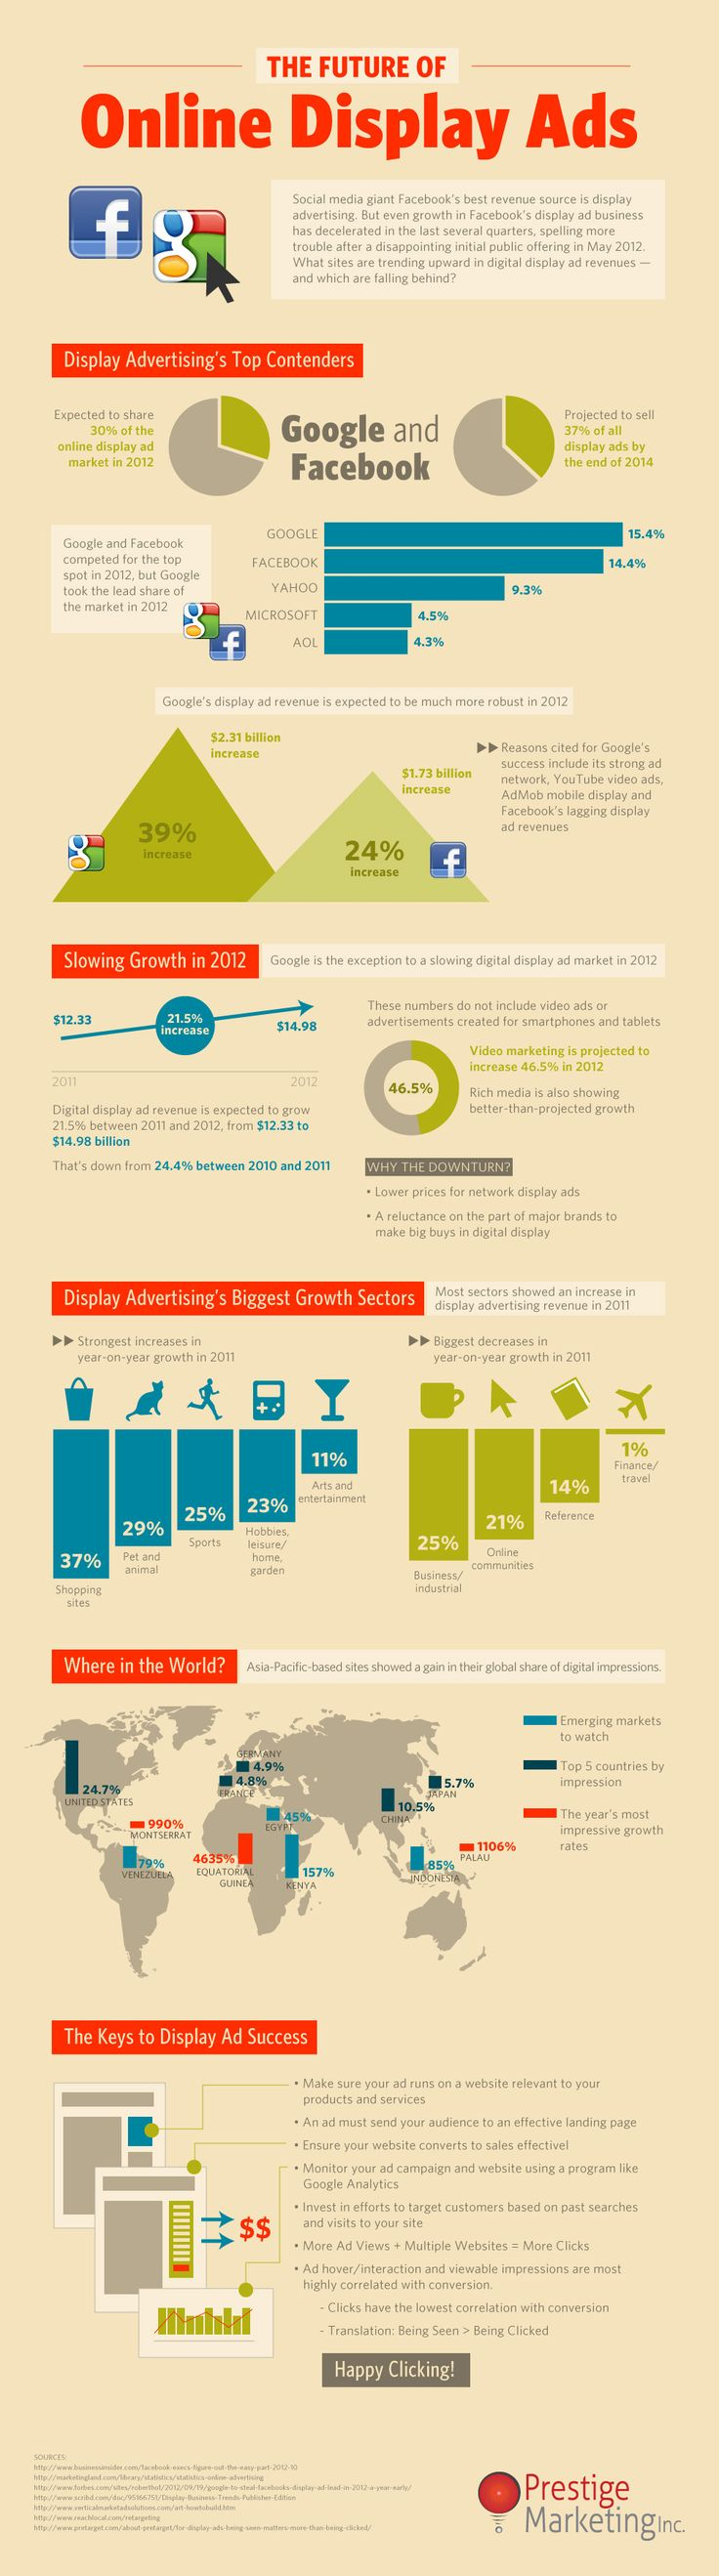 The Future Of Online Display Ads [Infographic] - Prestige Marketing Inc. Blog